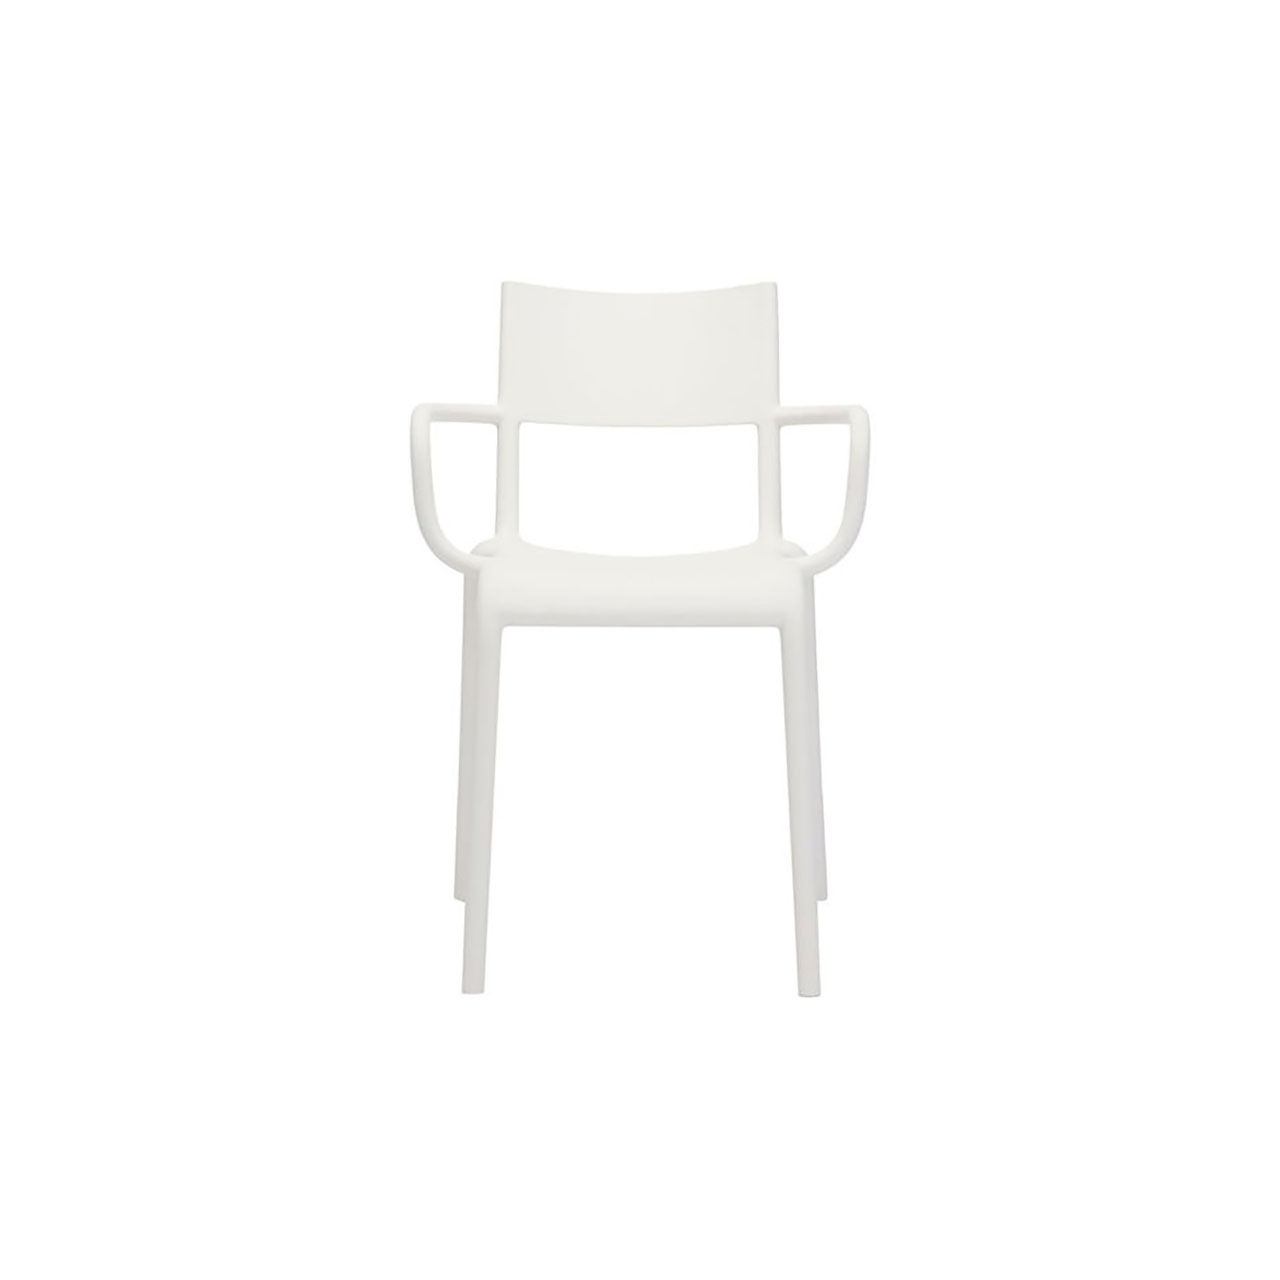 Generic Chair A Set of 2 in White by Kartell